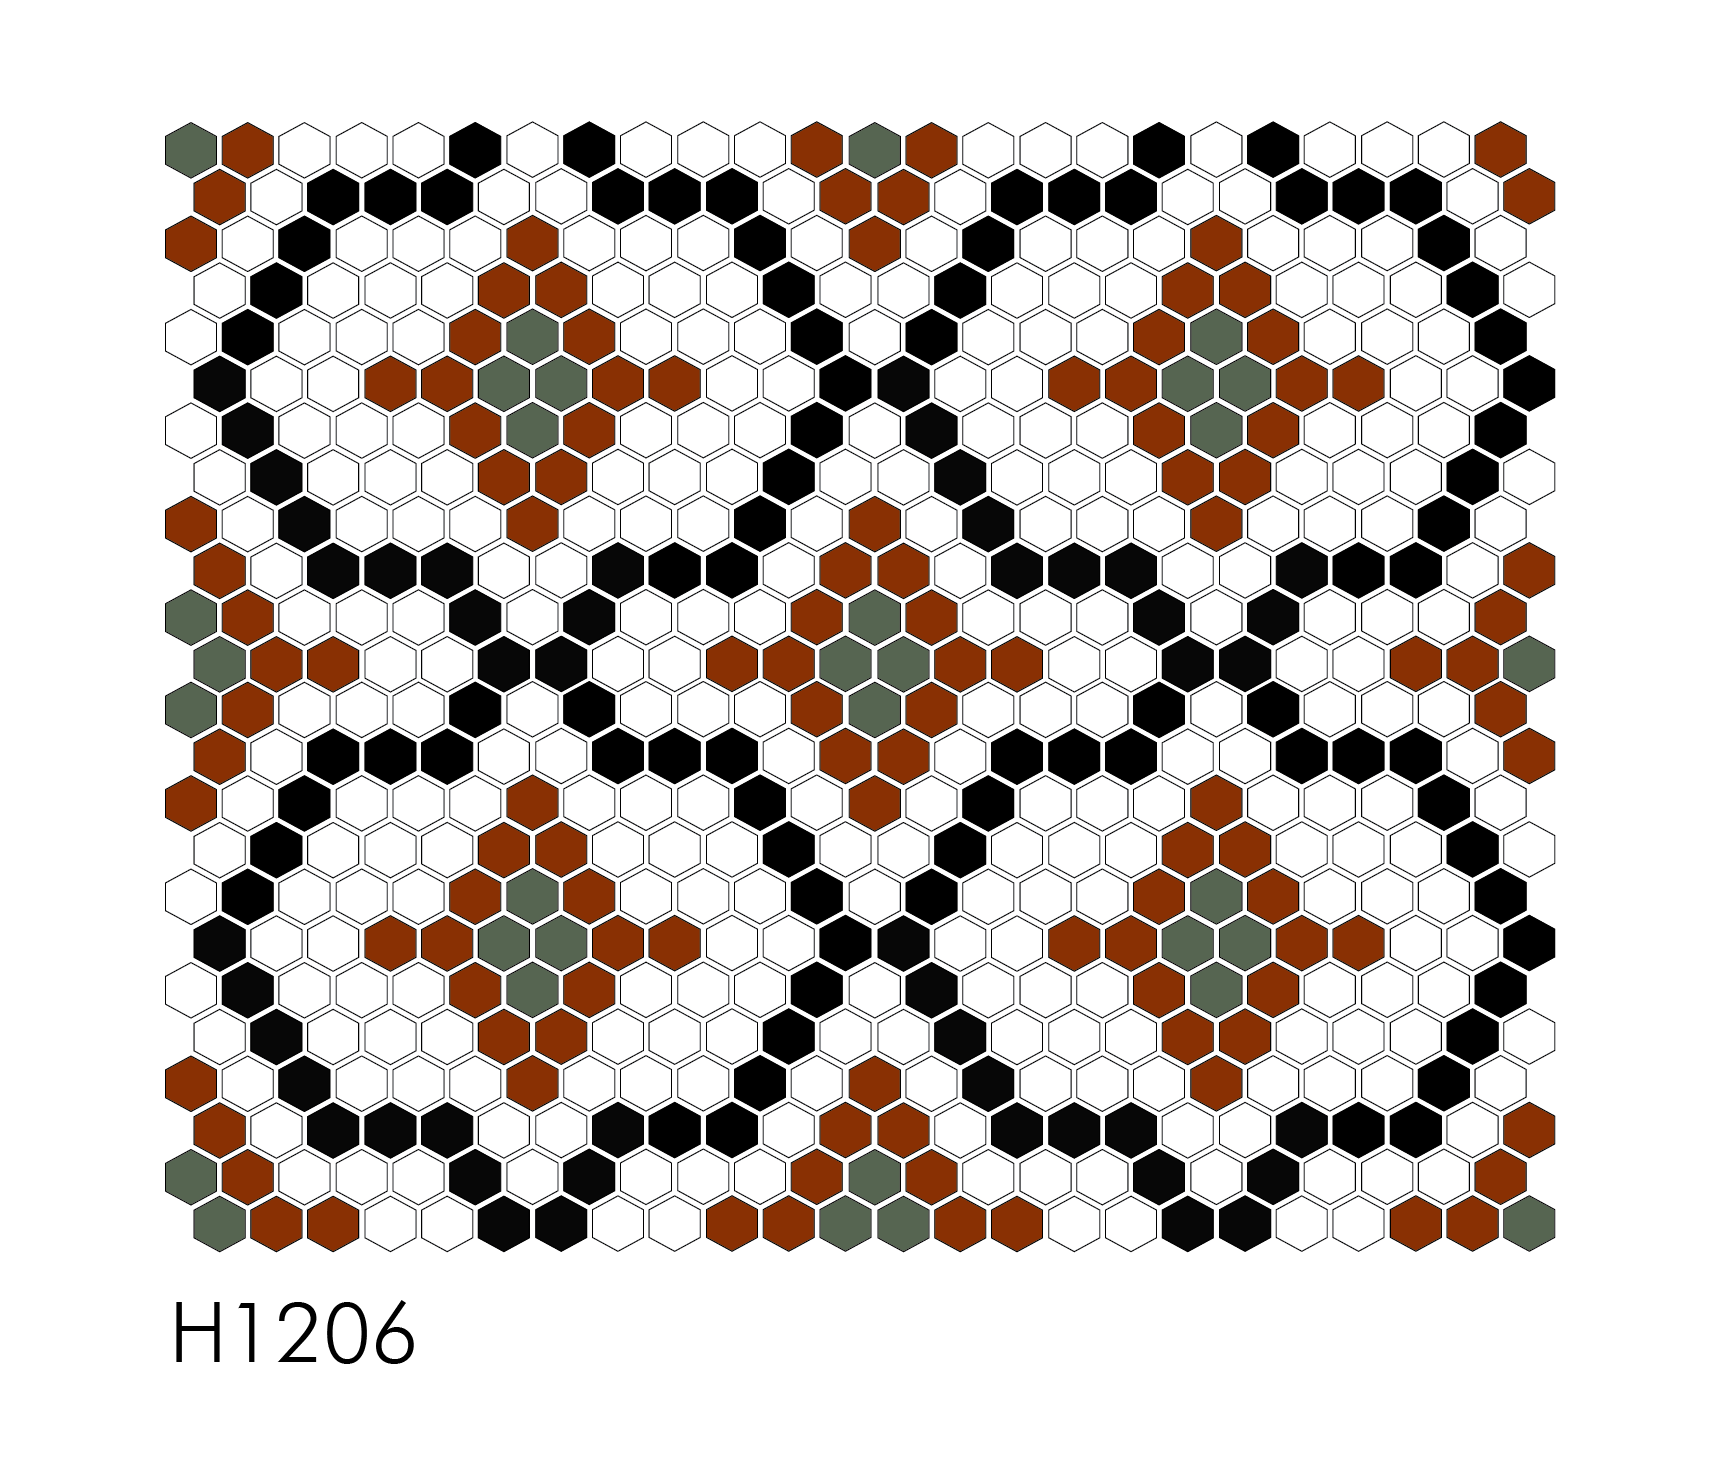 "H1206 1"" Hexagon Mosaic"